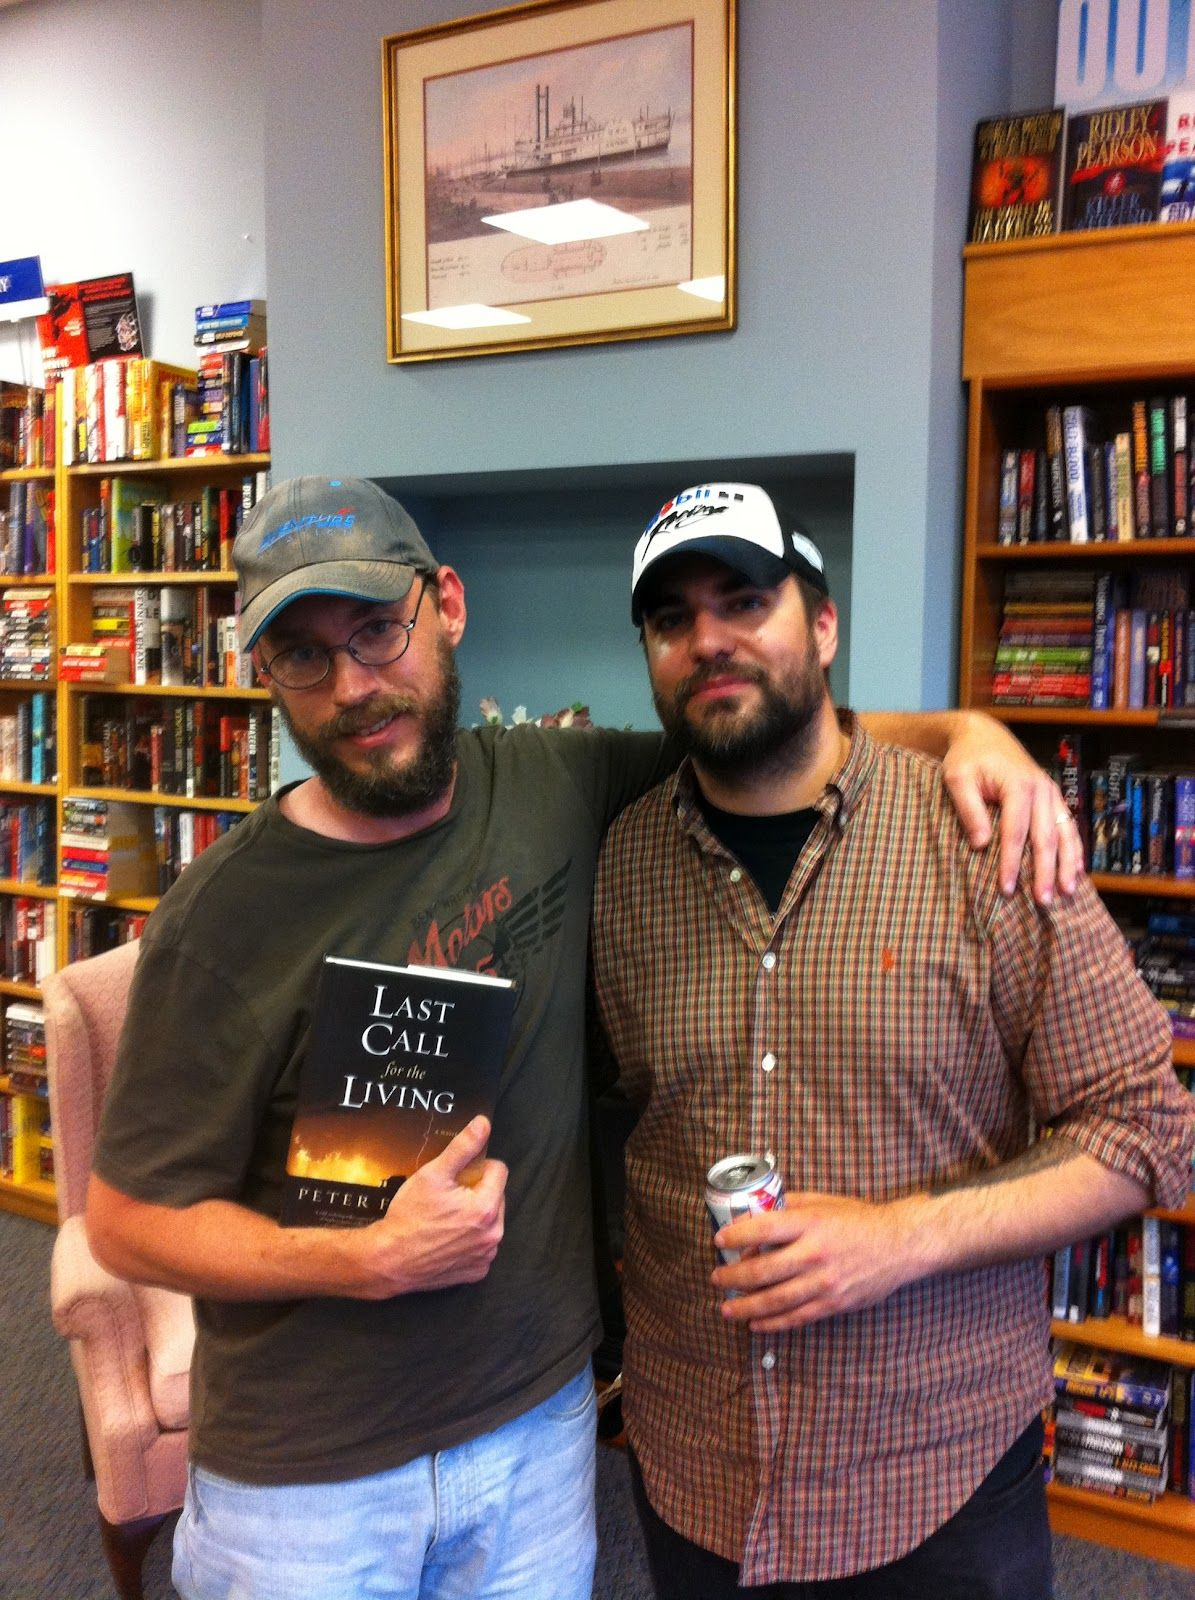 Peter Farris (on left: author of 'Last Call for the Living.') & Grant Jerkins (on right: author of 'A Very Simple Crime,' 'At the End of the Road,' & 'The Ninth Step.')       -------      http://peterfarris.blogspot.com       http://www.grantjerkins.com